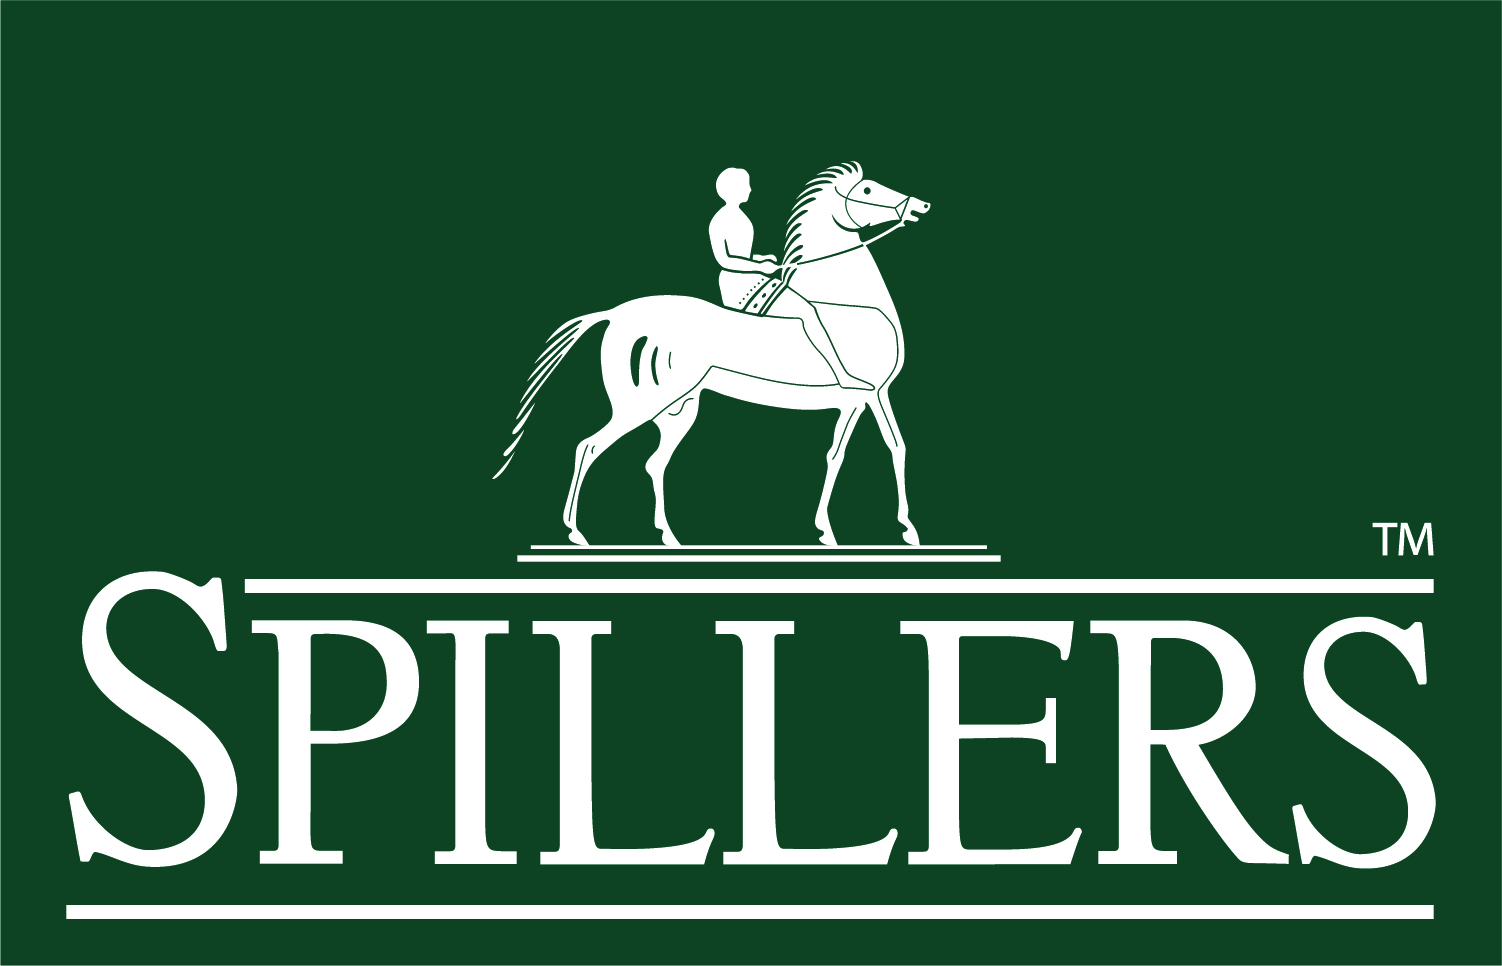 spillers-small-with-green-bg